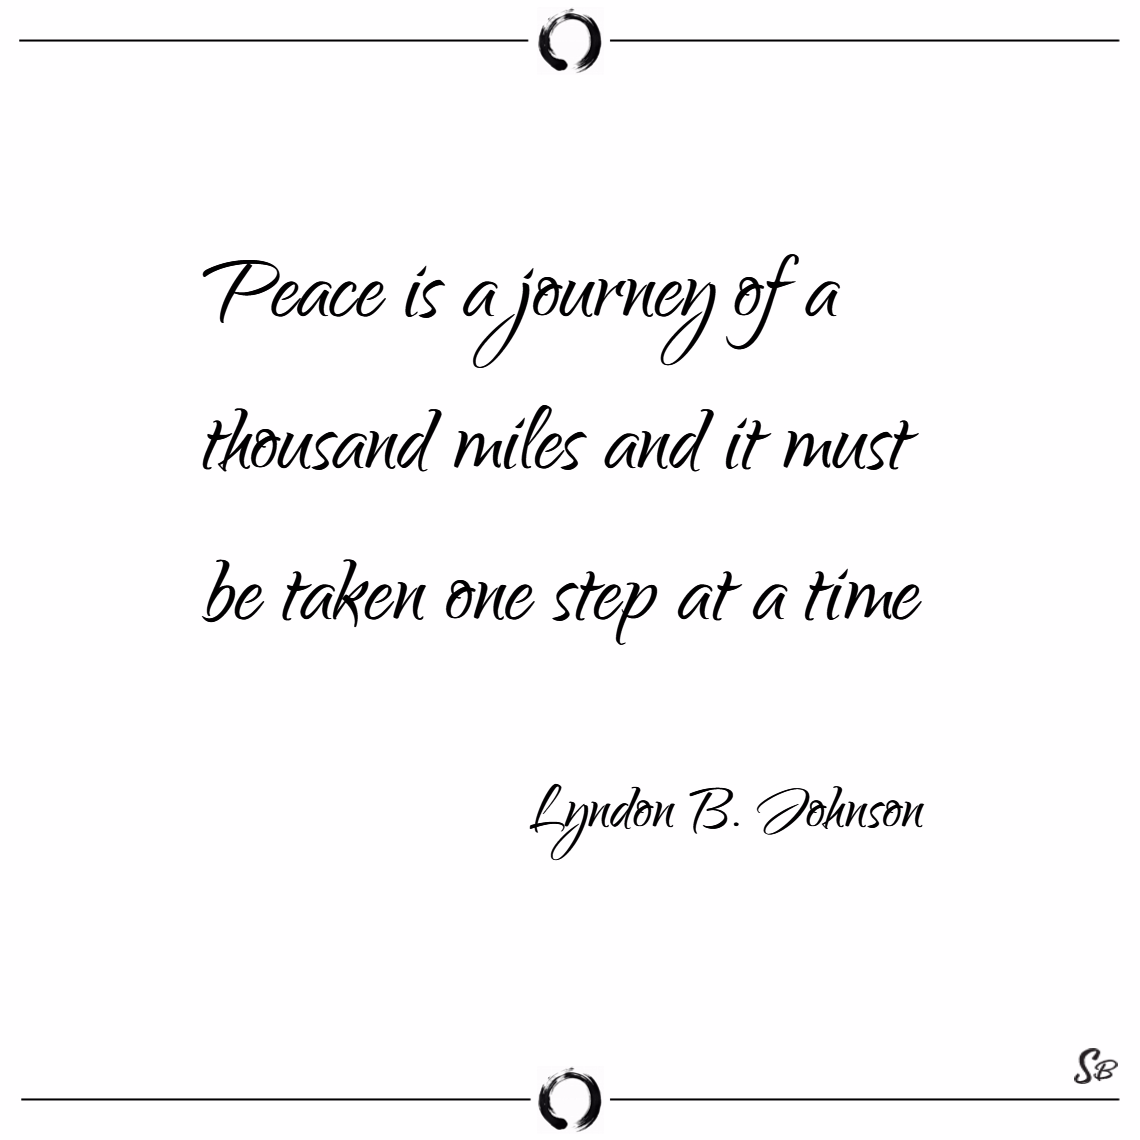 Peace is a journey of a thousand miles and it must